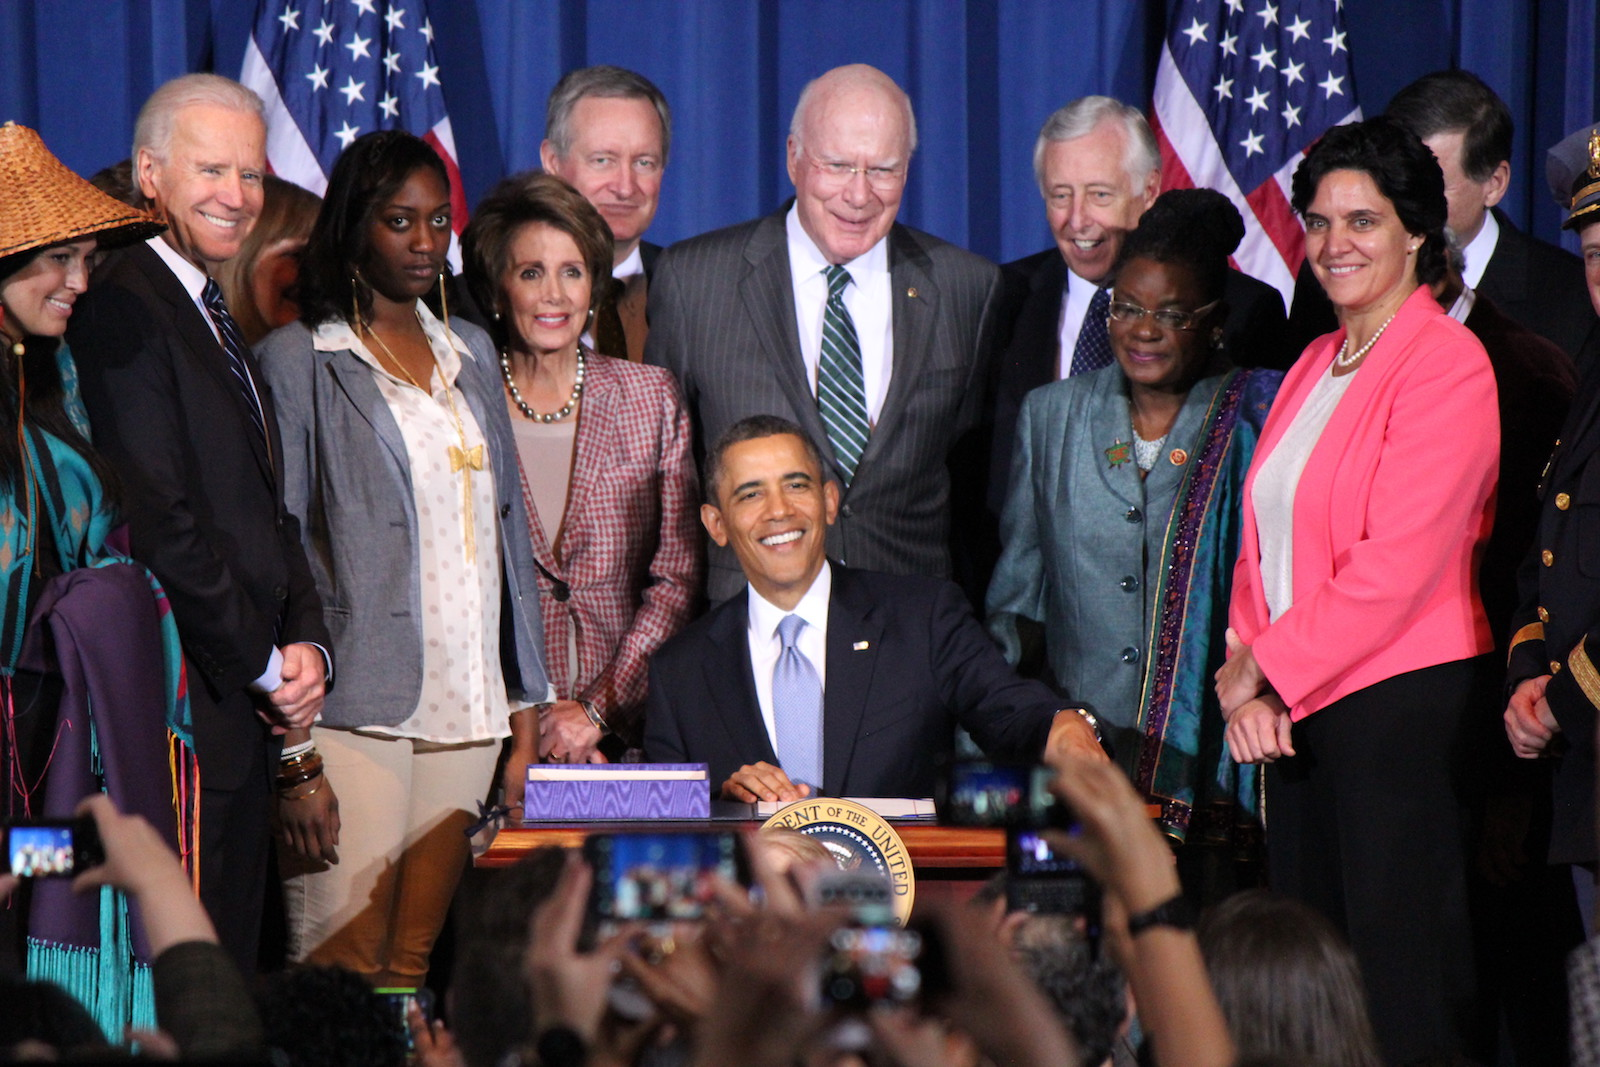 Obama cites 'inherent' right of tribes at VAWA signing ceremony